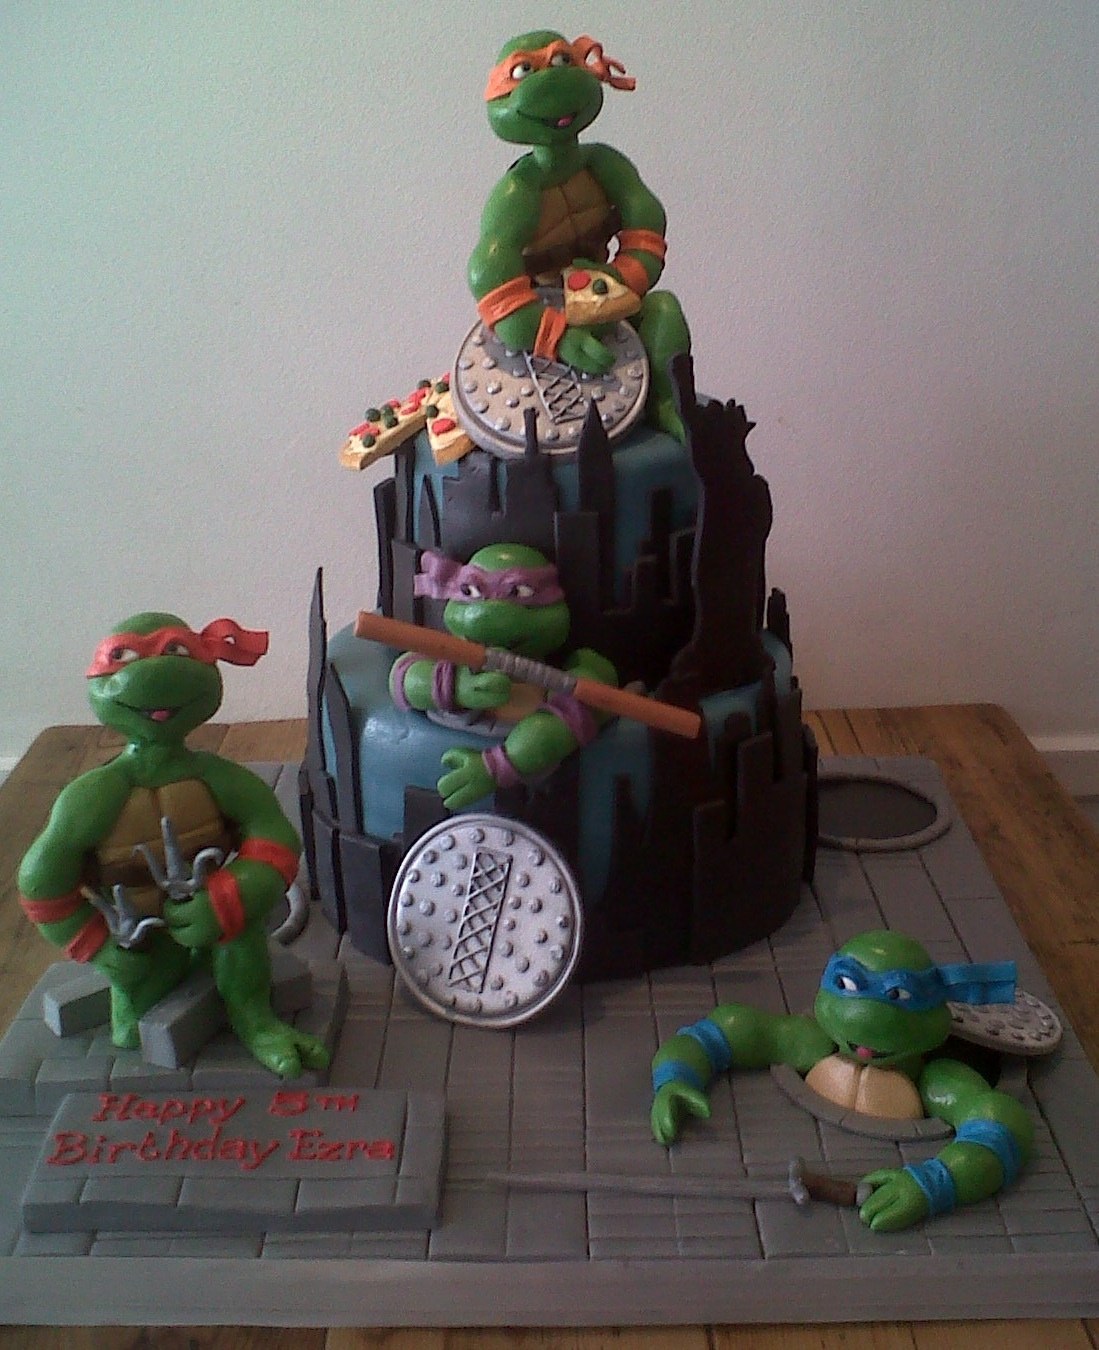 Pleasant Teenage Mutant Ninja Turtles Birthday Cake Cakes By Robin Birthday Cards Printable Riciscafe Filternl